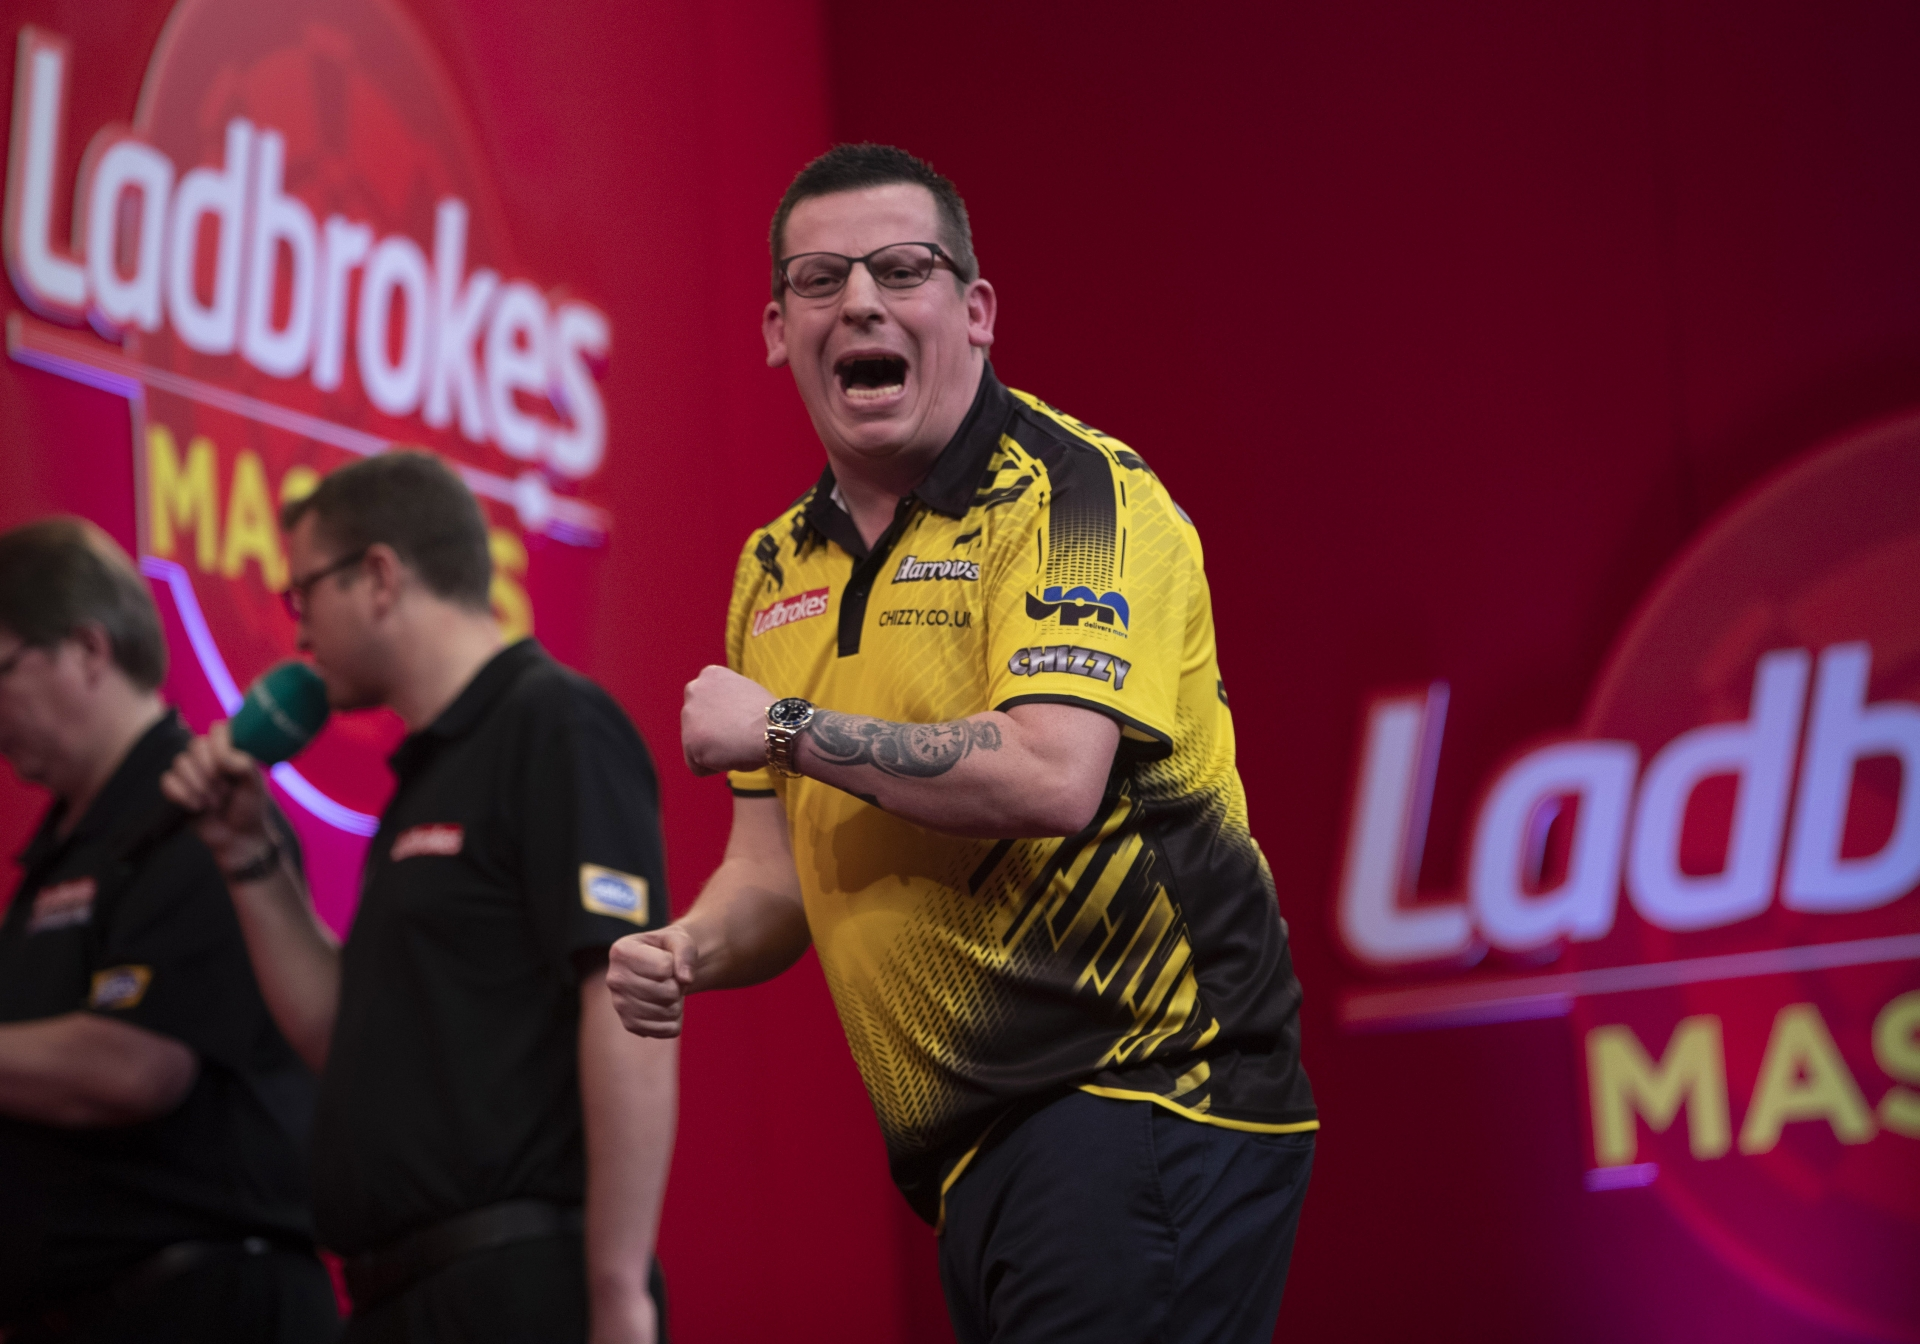 Dave Chisnall (Lawrence Lustig, PDC)